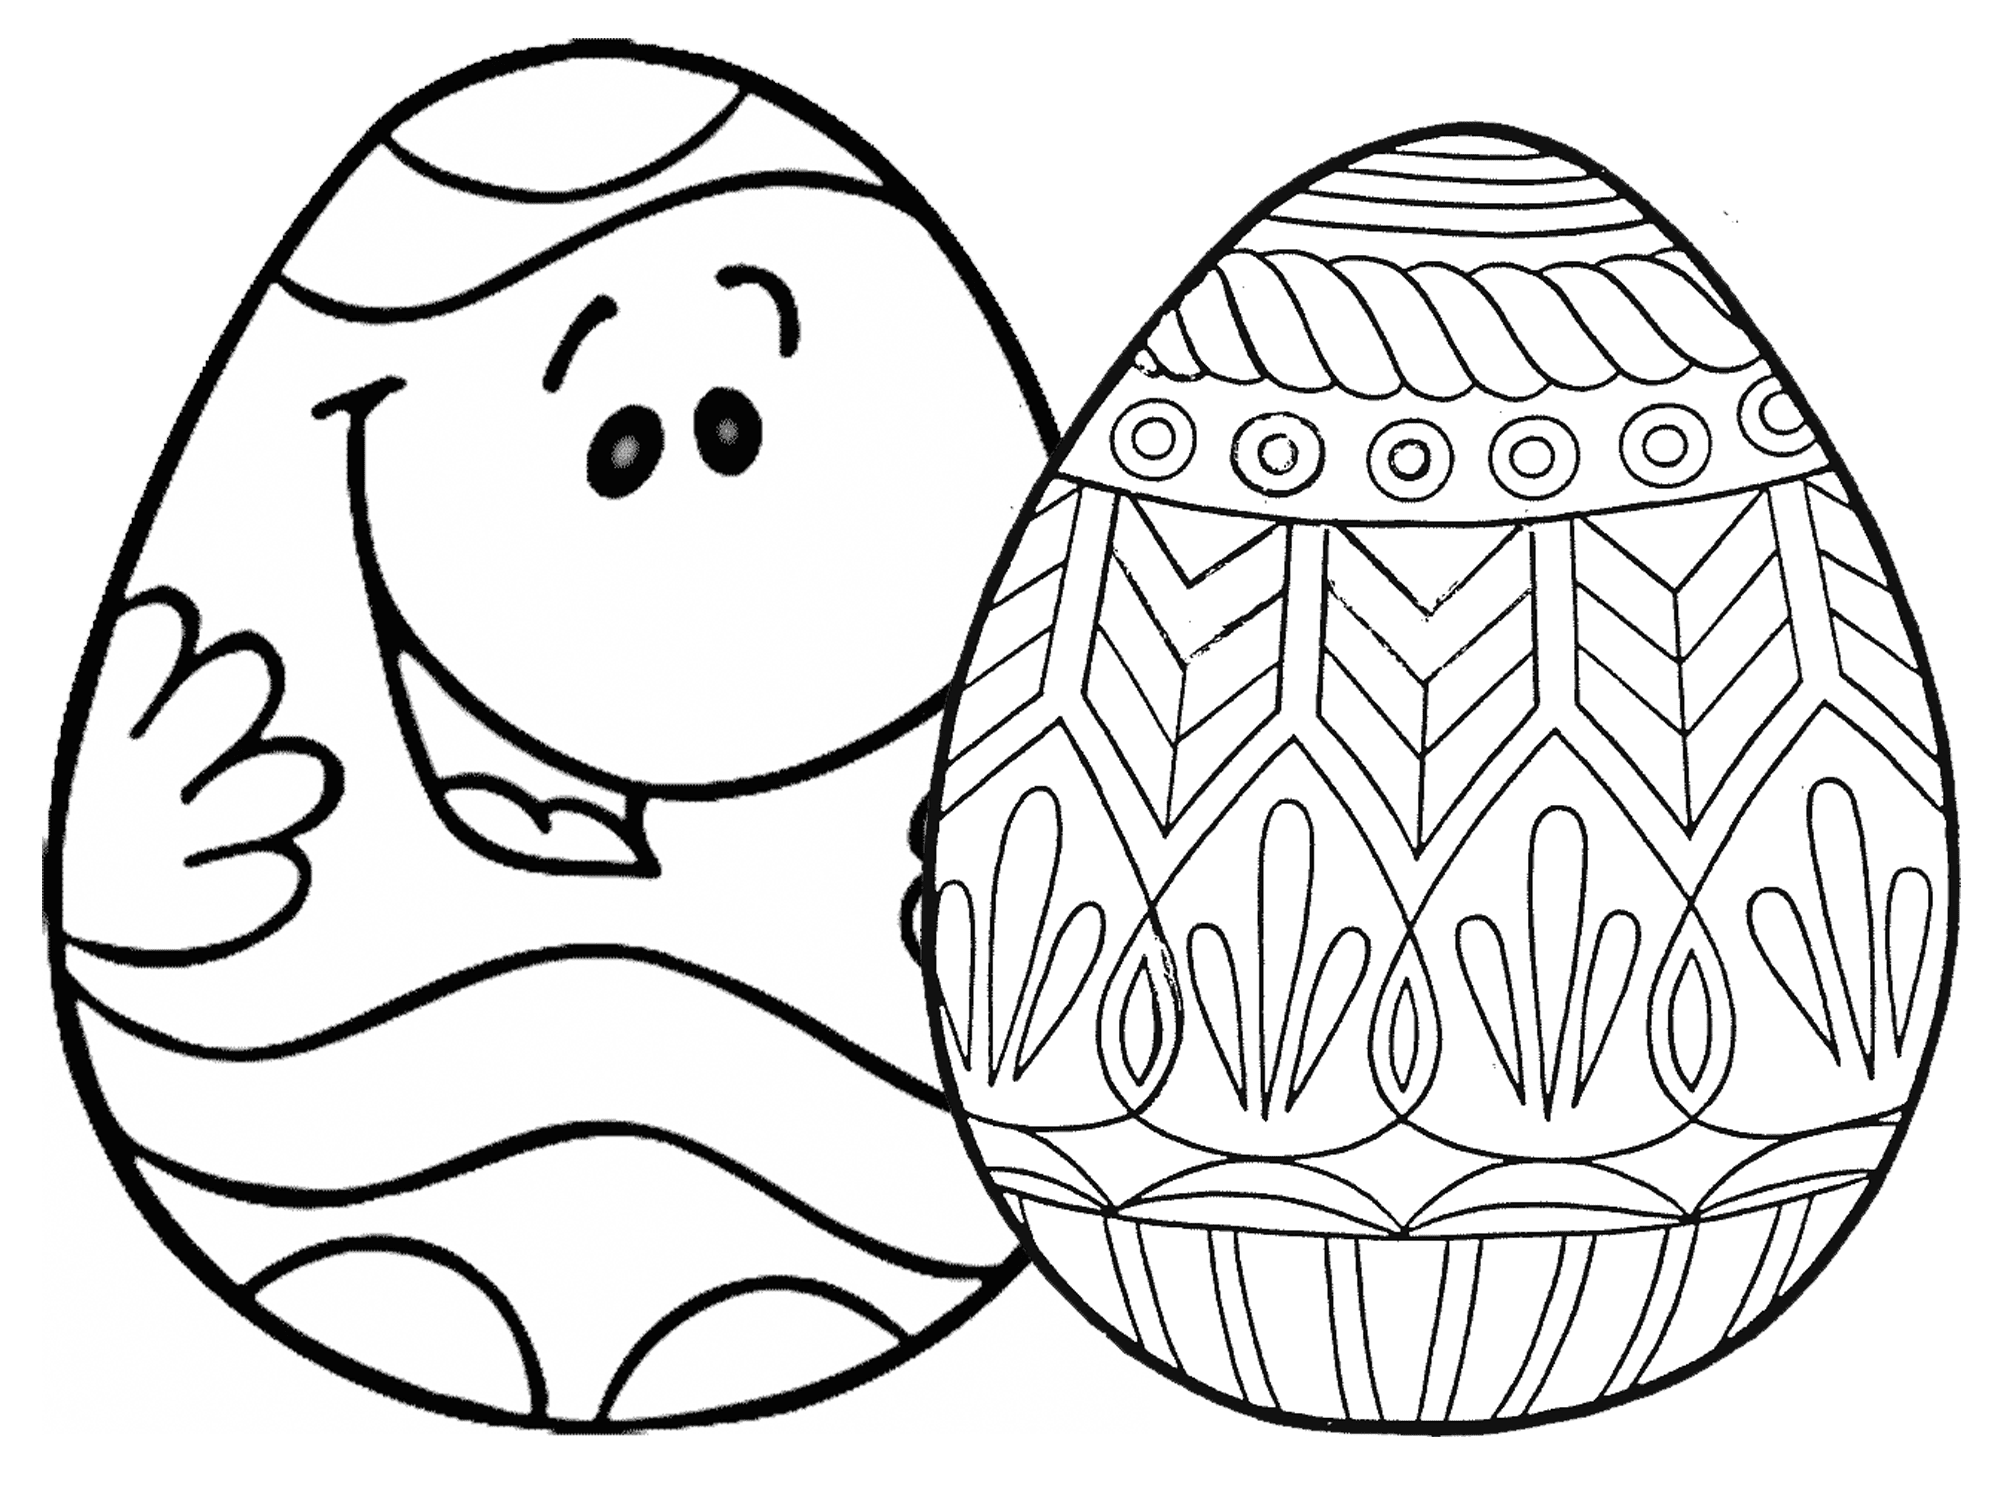 egg coloring pages 7 places for free printable easter egg coloring pages egg pages coloring